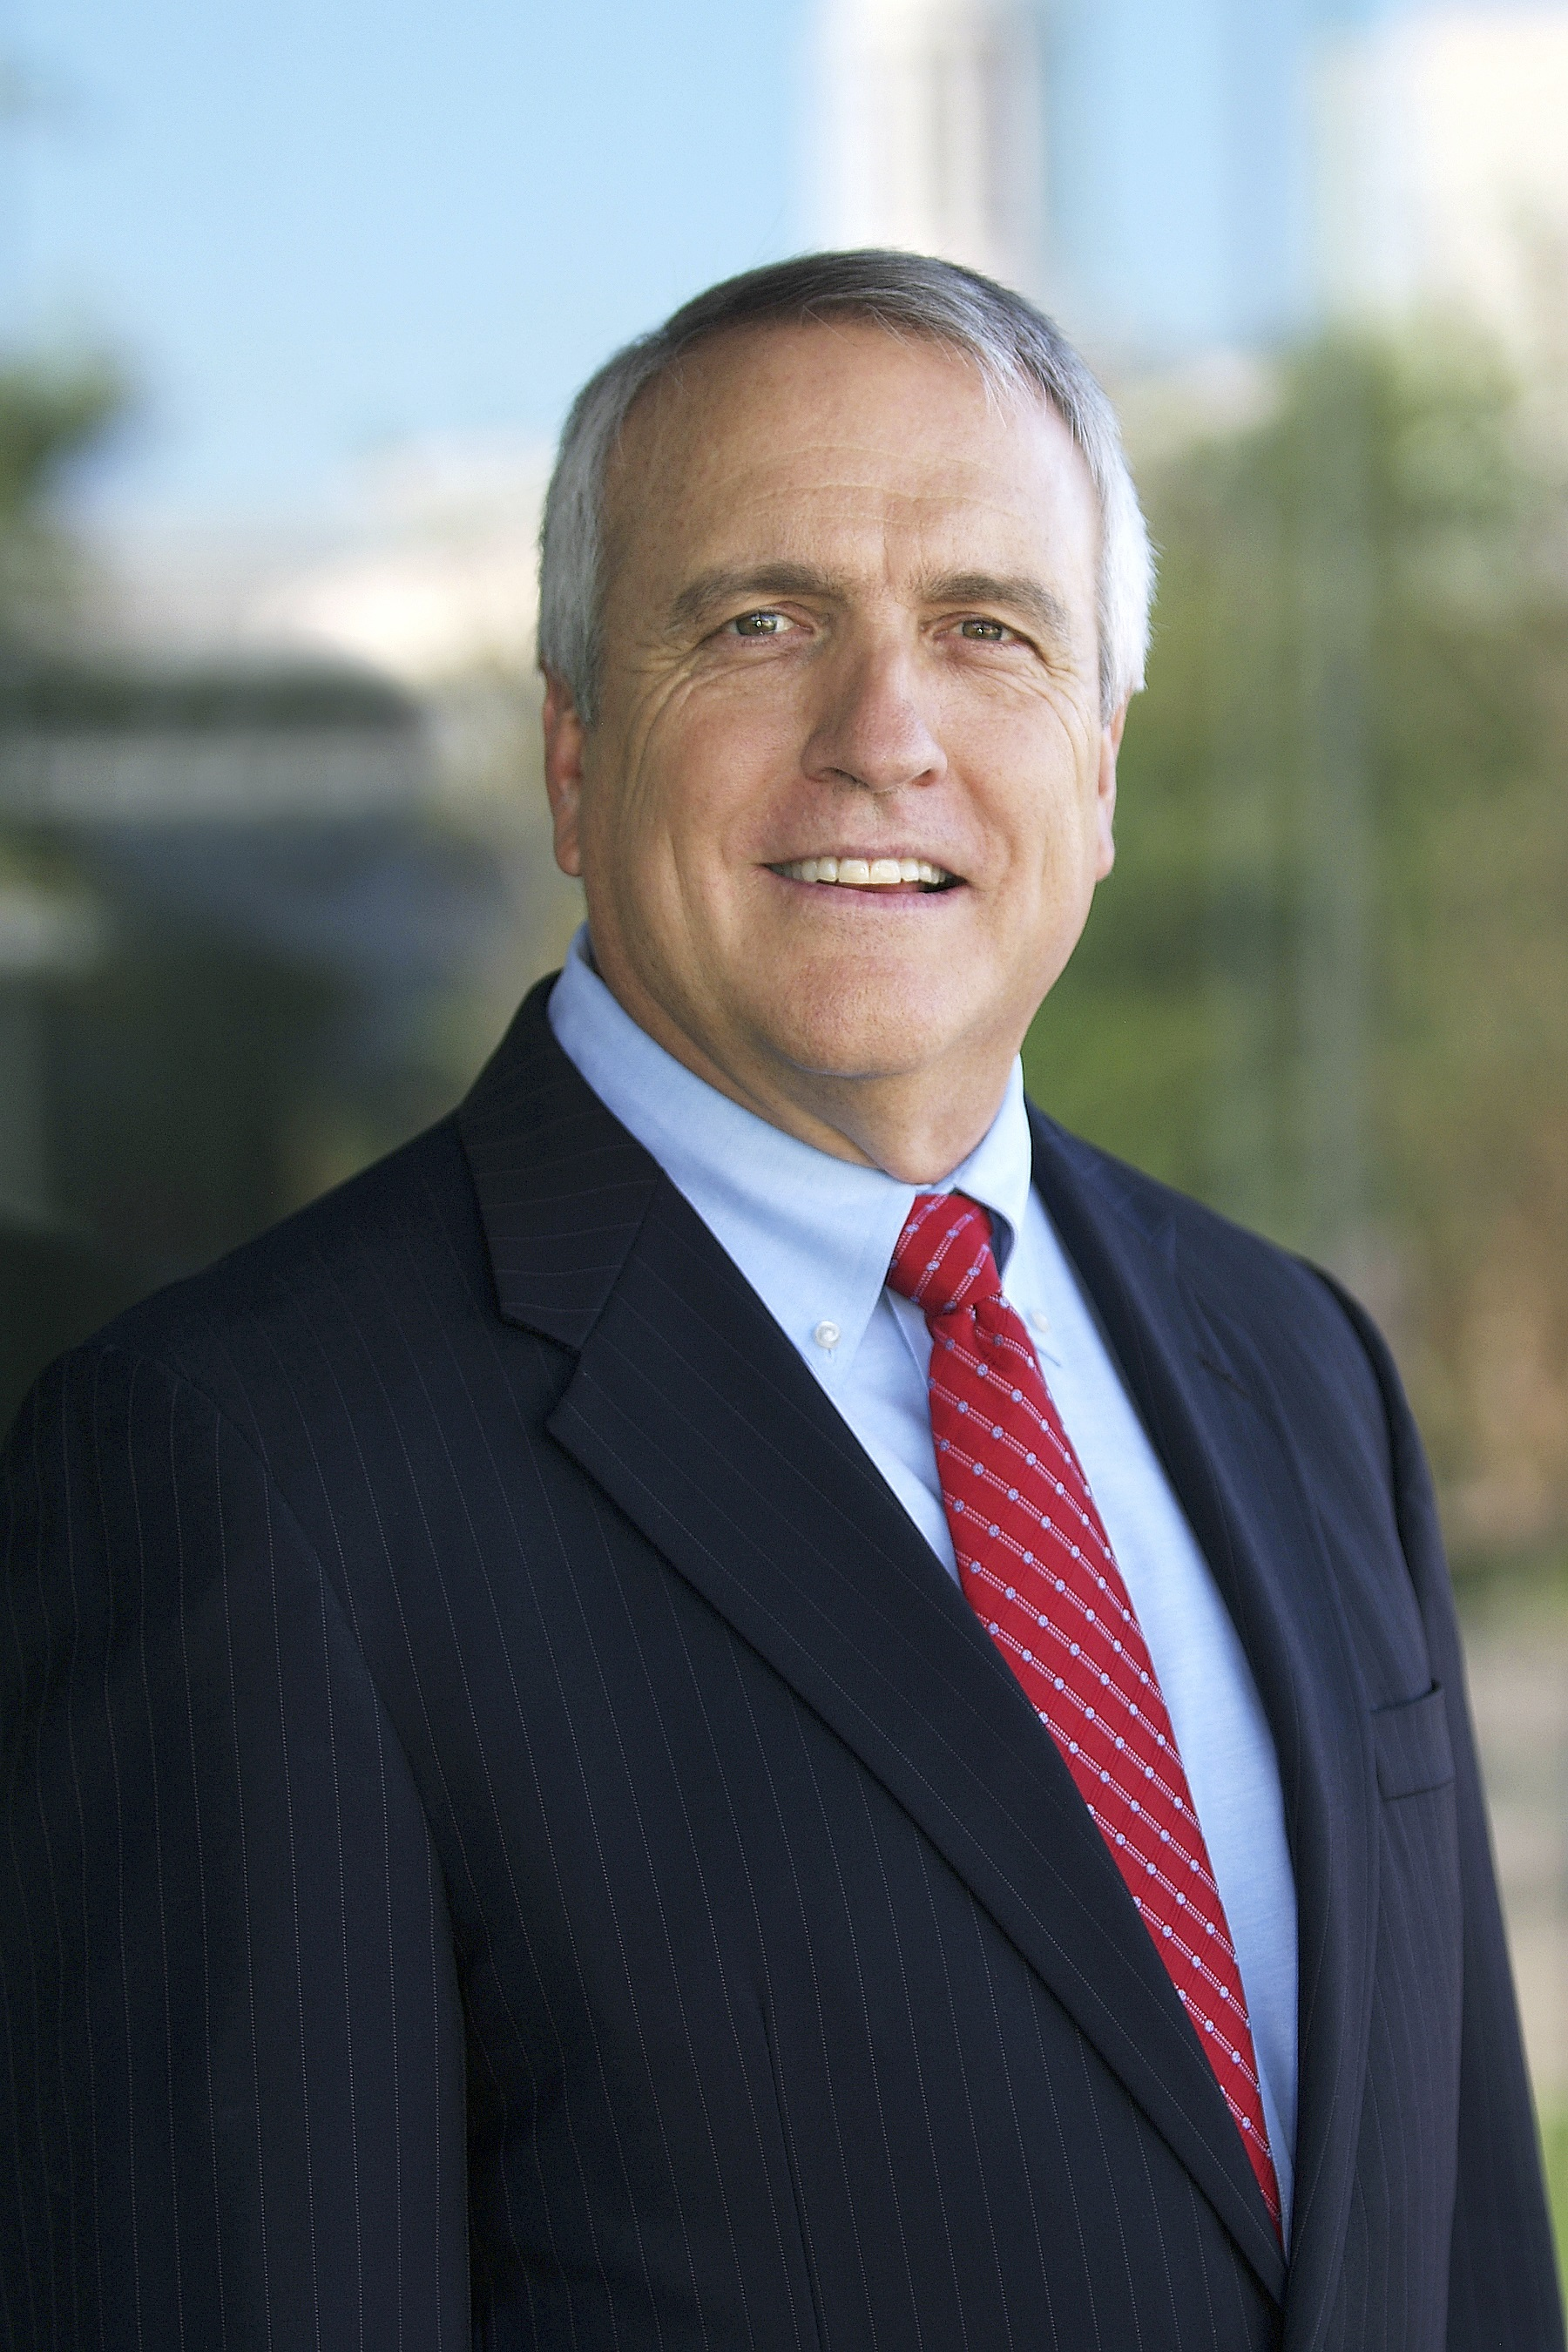 bill ritter 2013 - high res (2).jpg